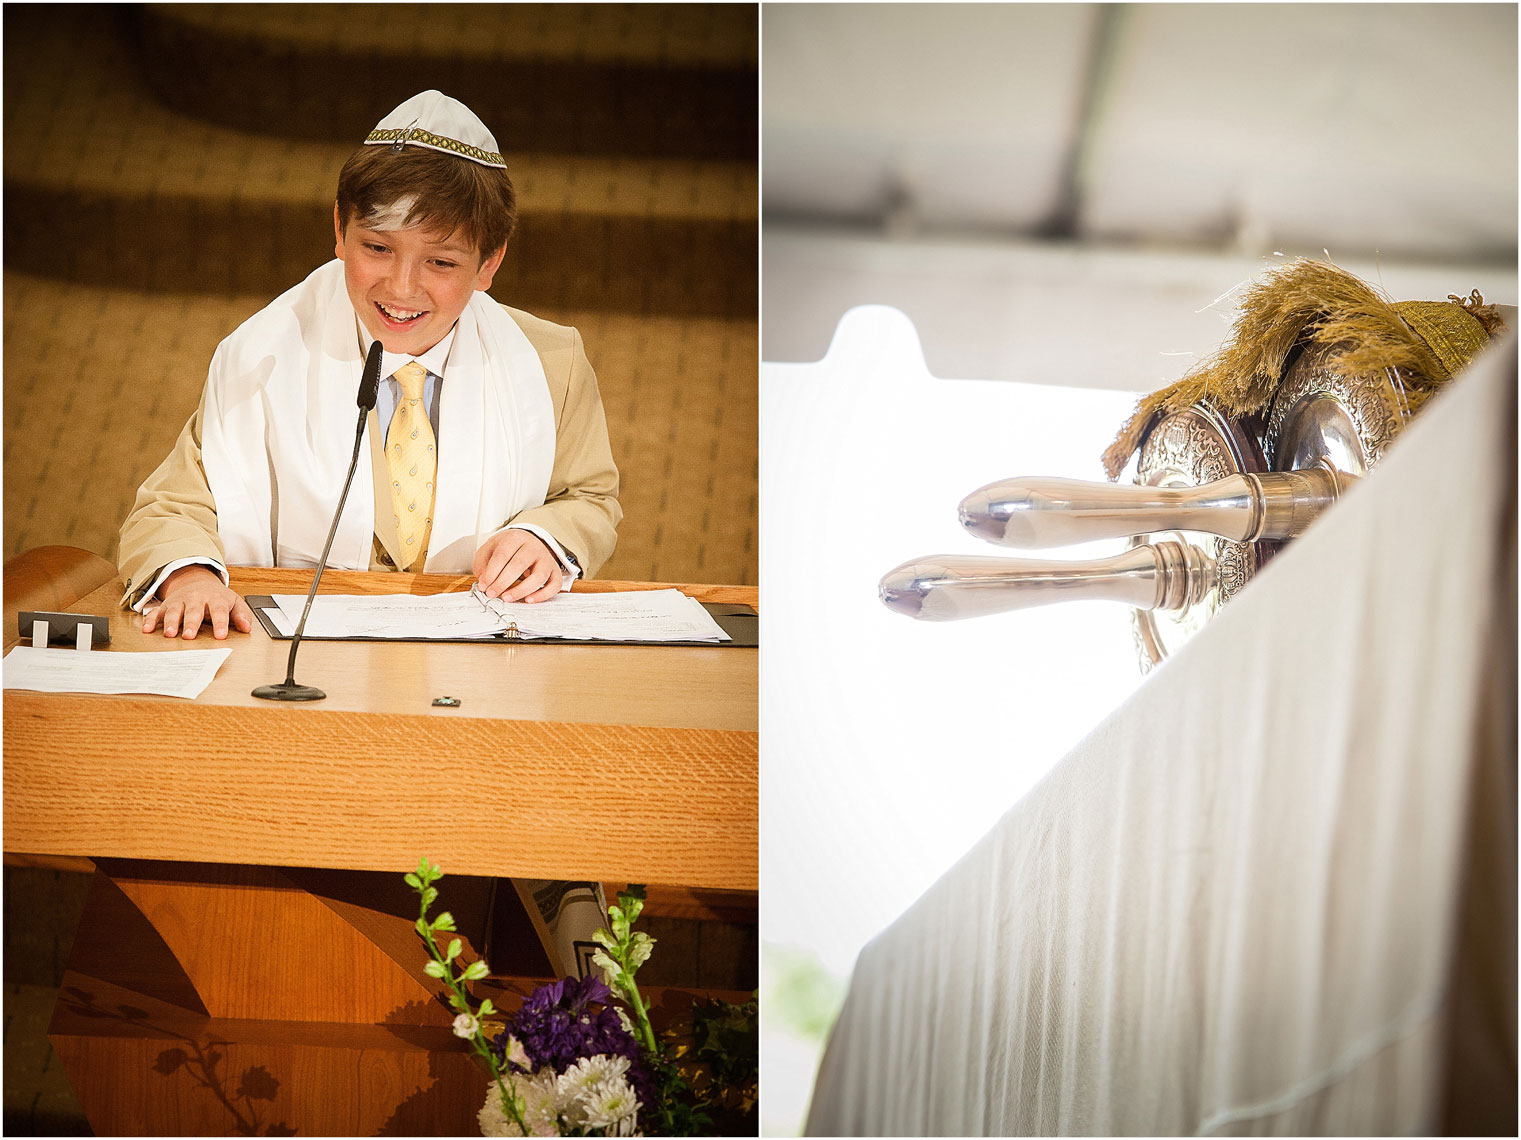 110618-0145_WEB-mitzvah-photography